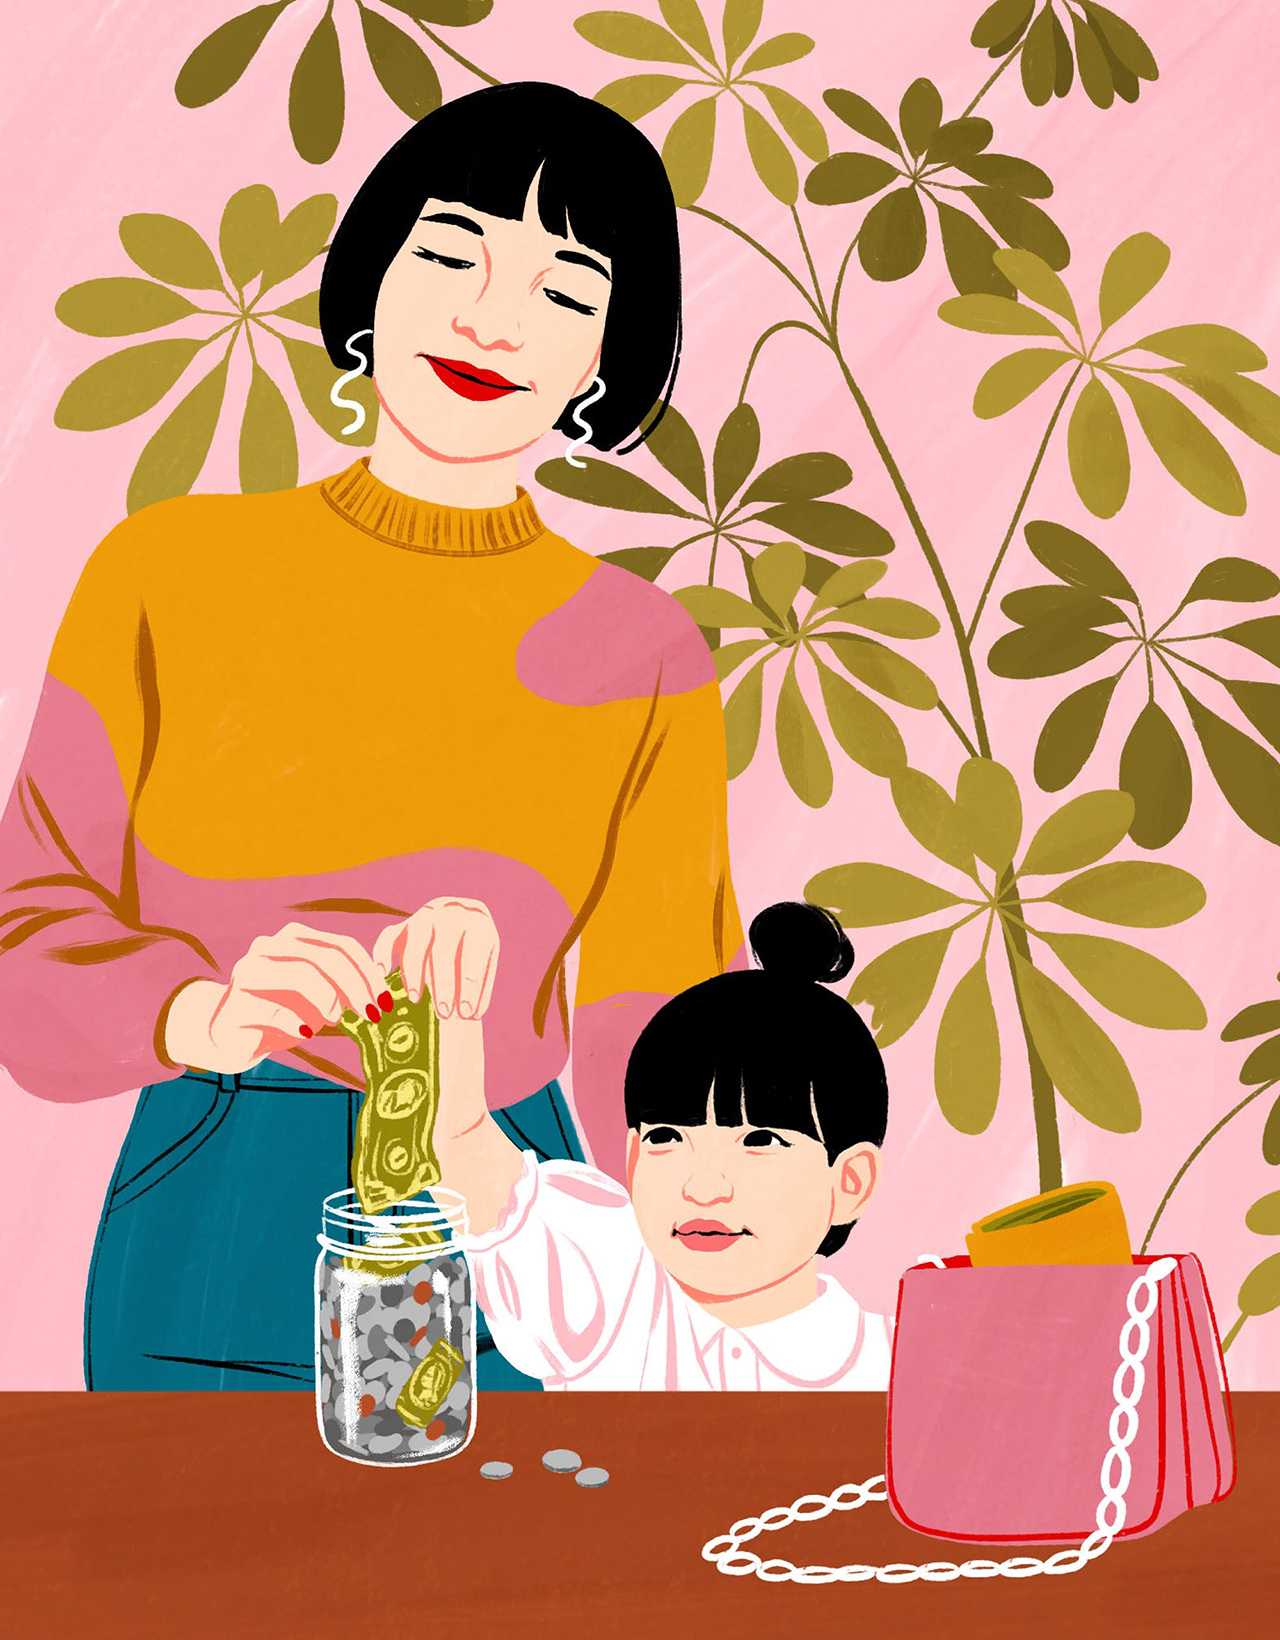 mother daughter placing money into jar illustration